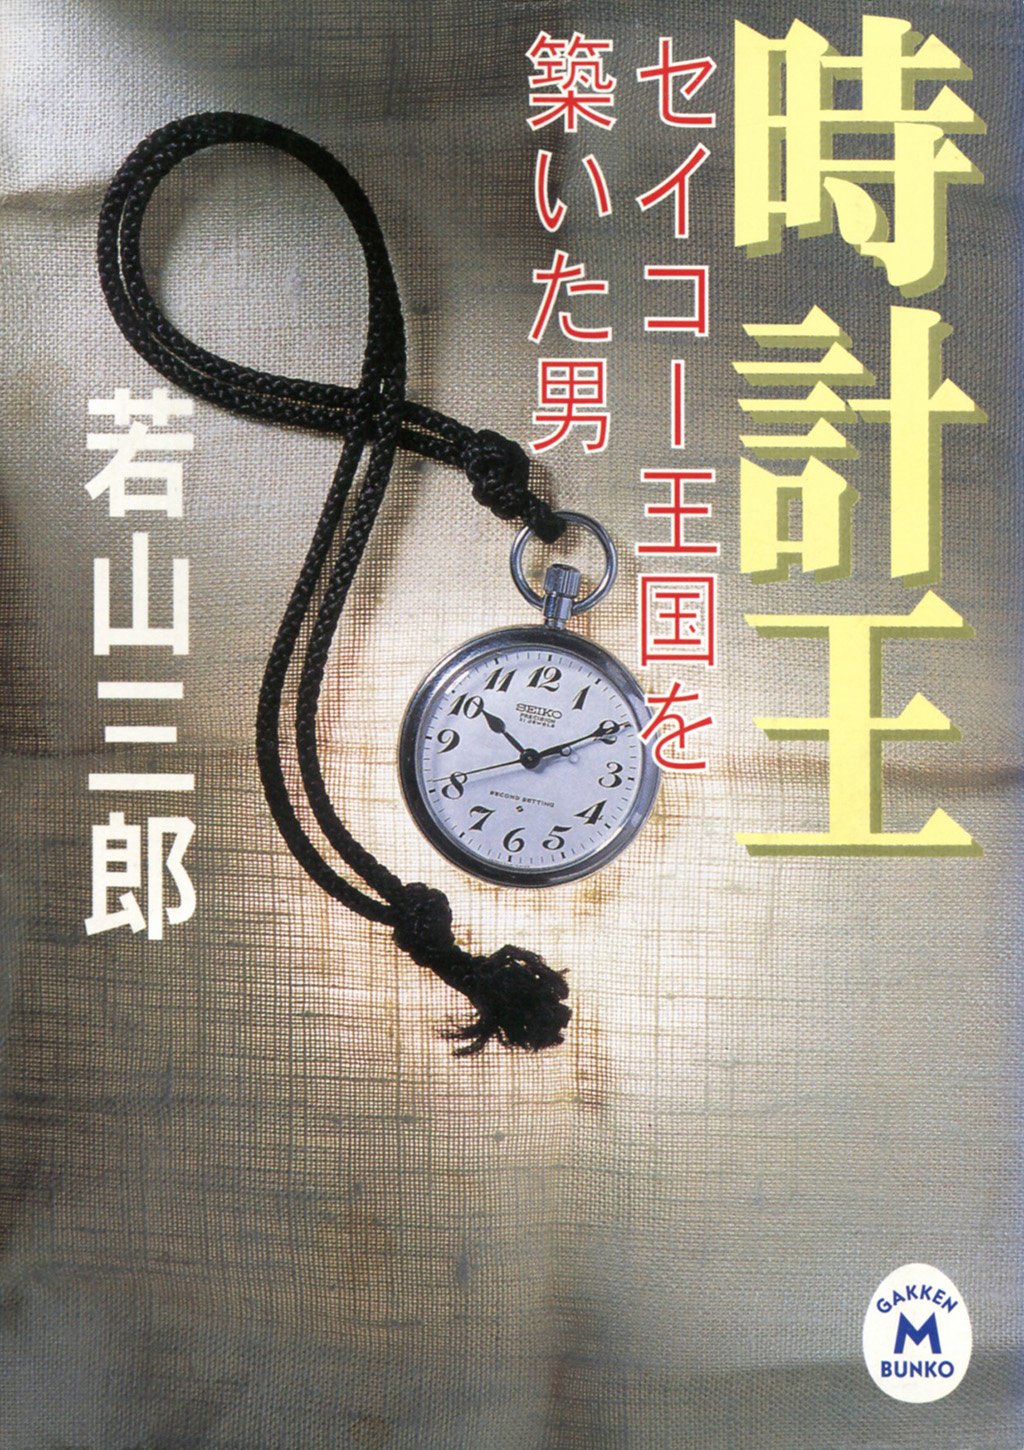 Cover - Watch King - The Man Who Built a Kingdom Seiko